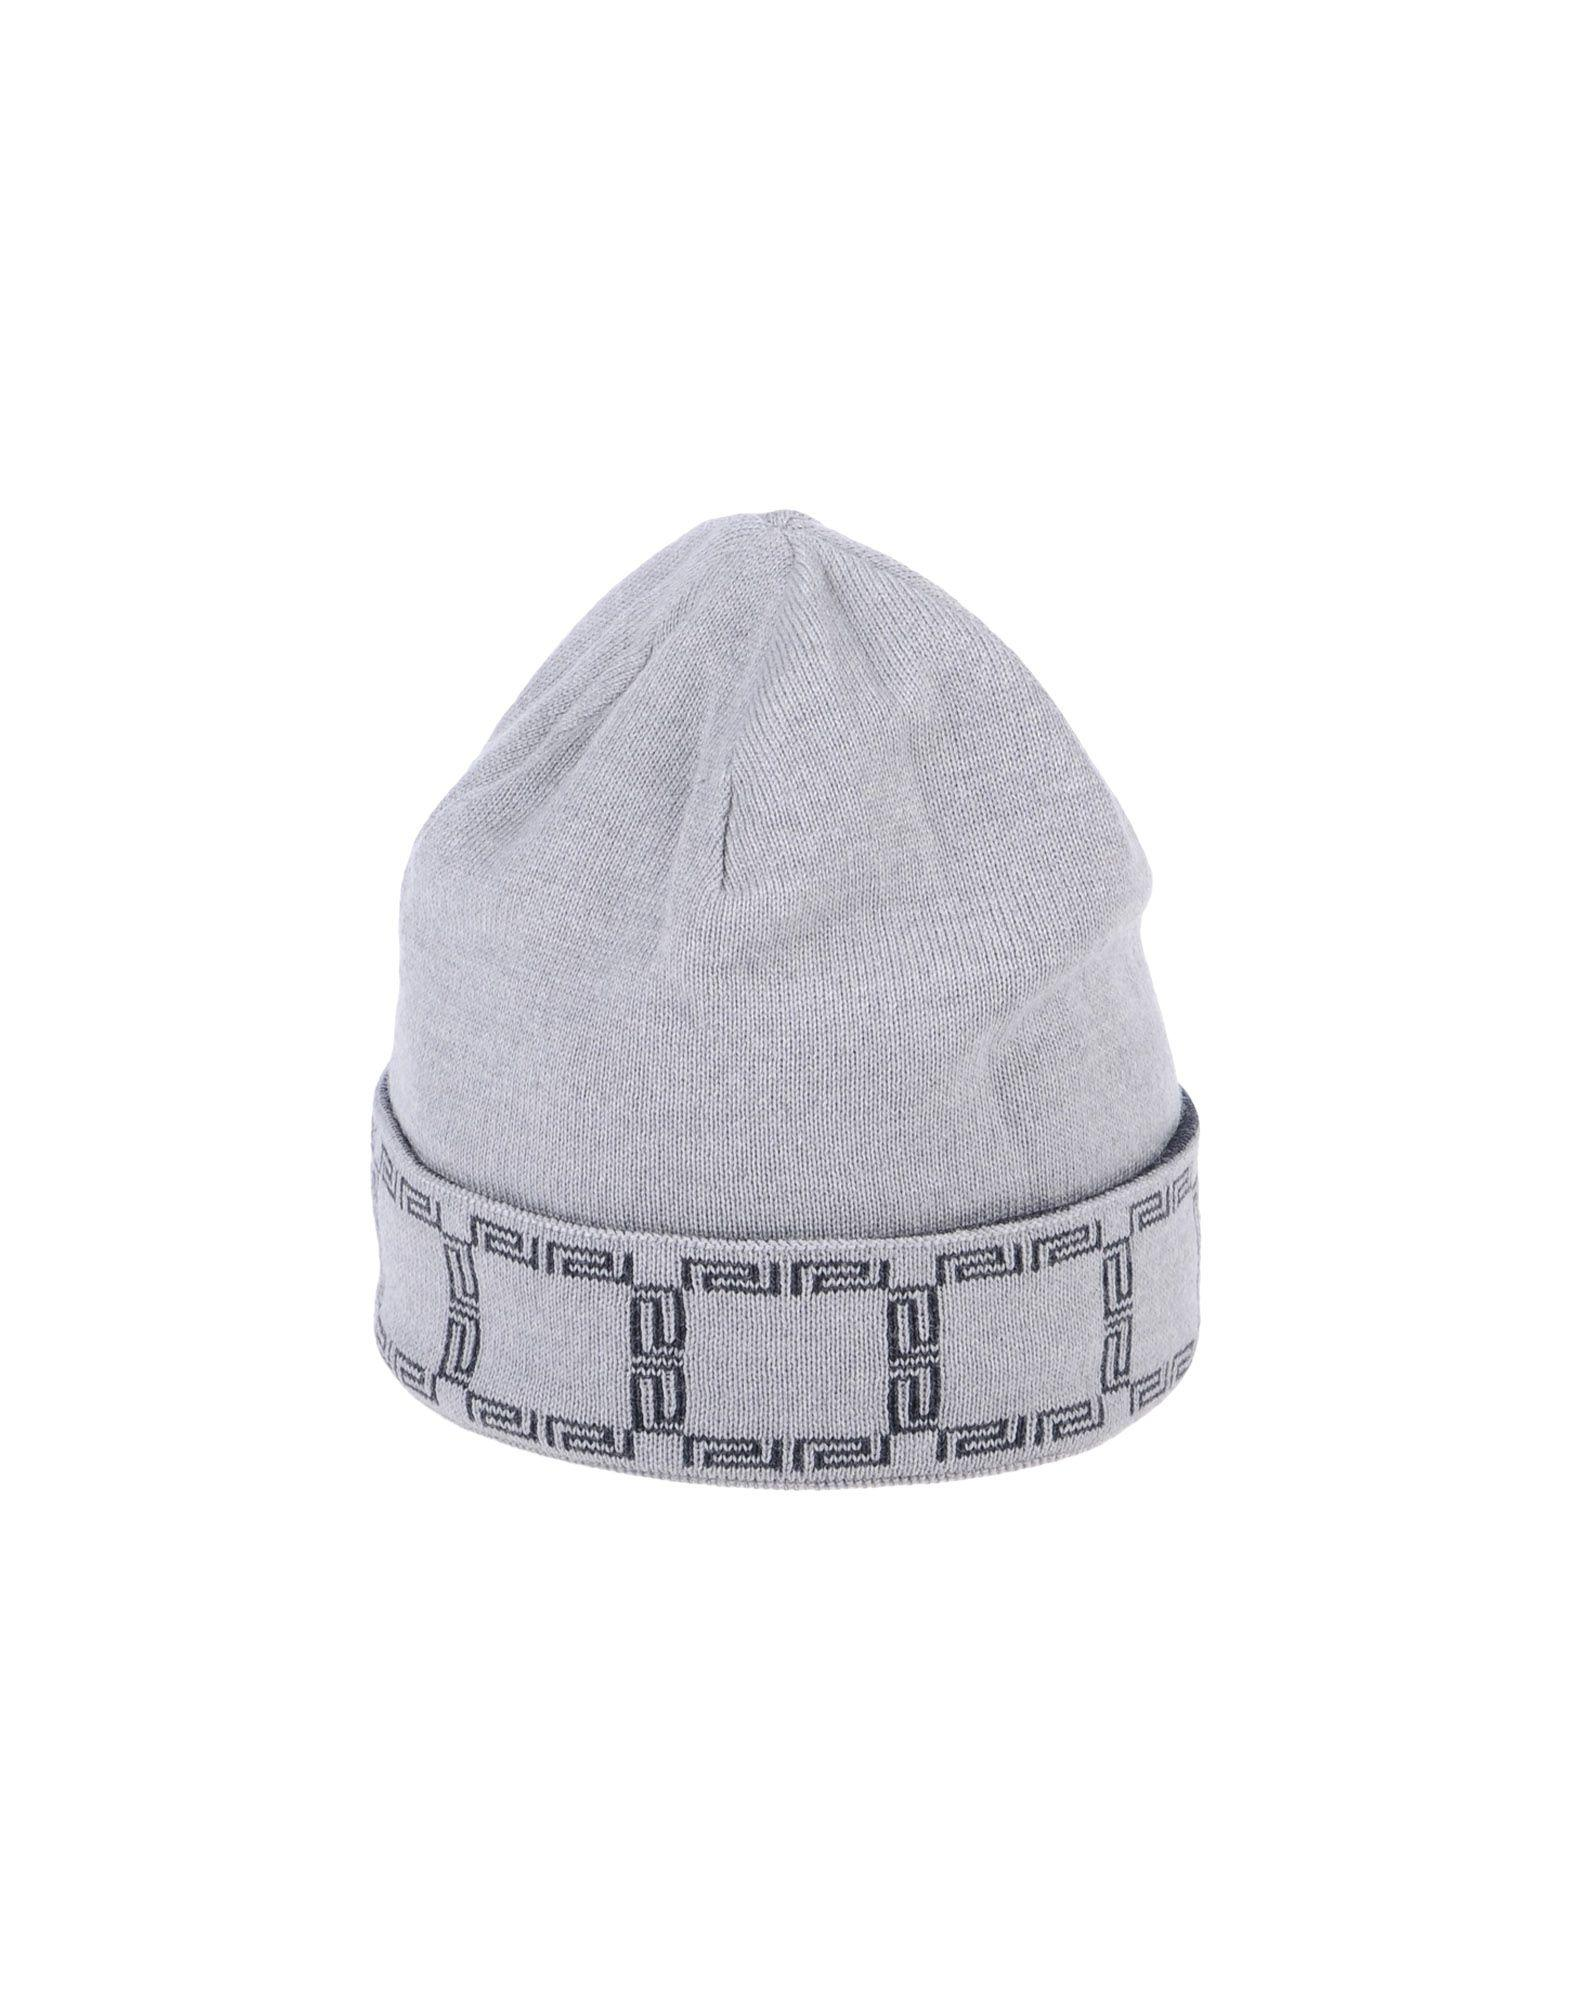 Versace Hat in Gray for Men - Lyst a36095688fe